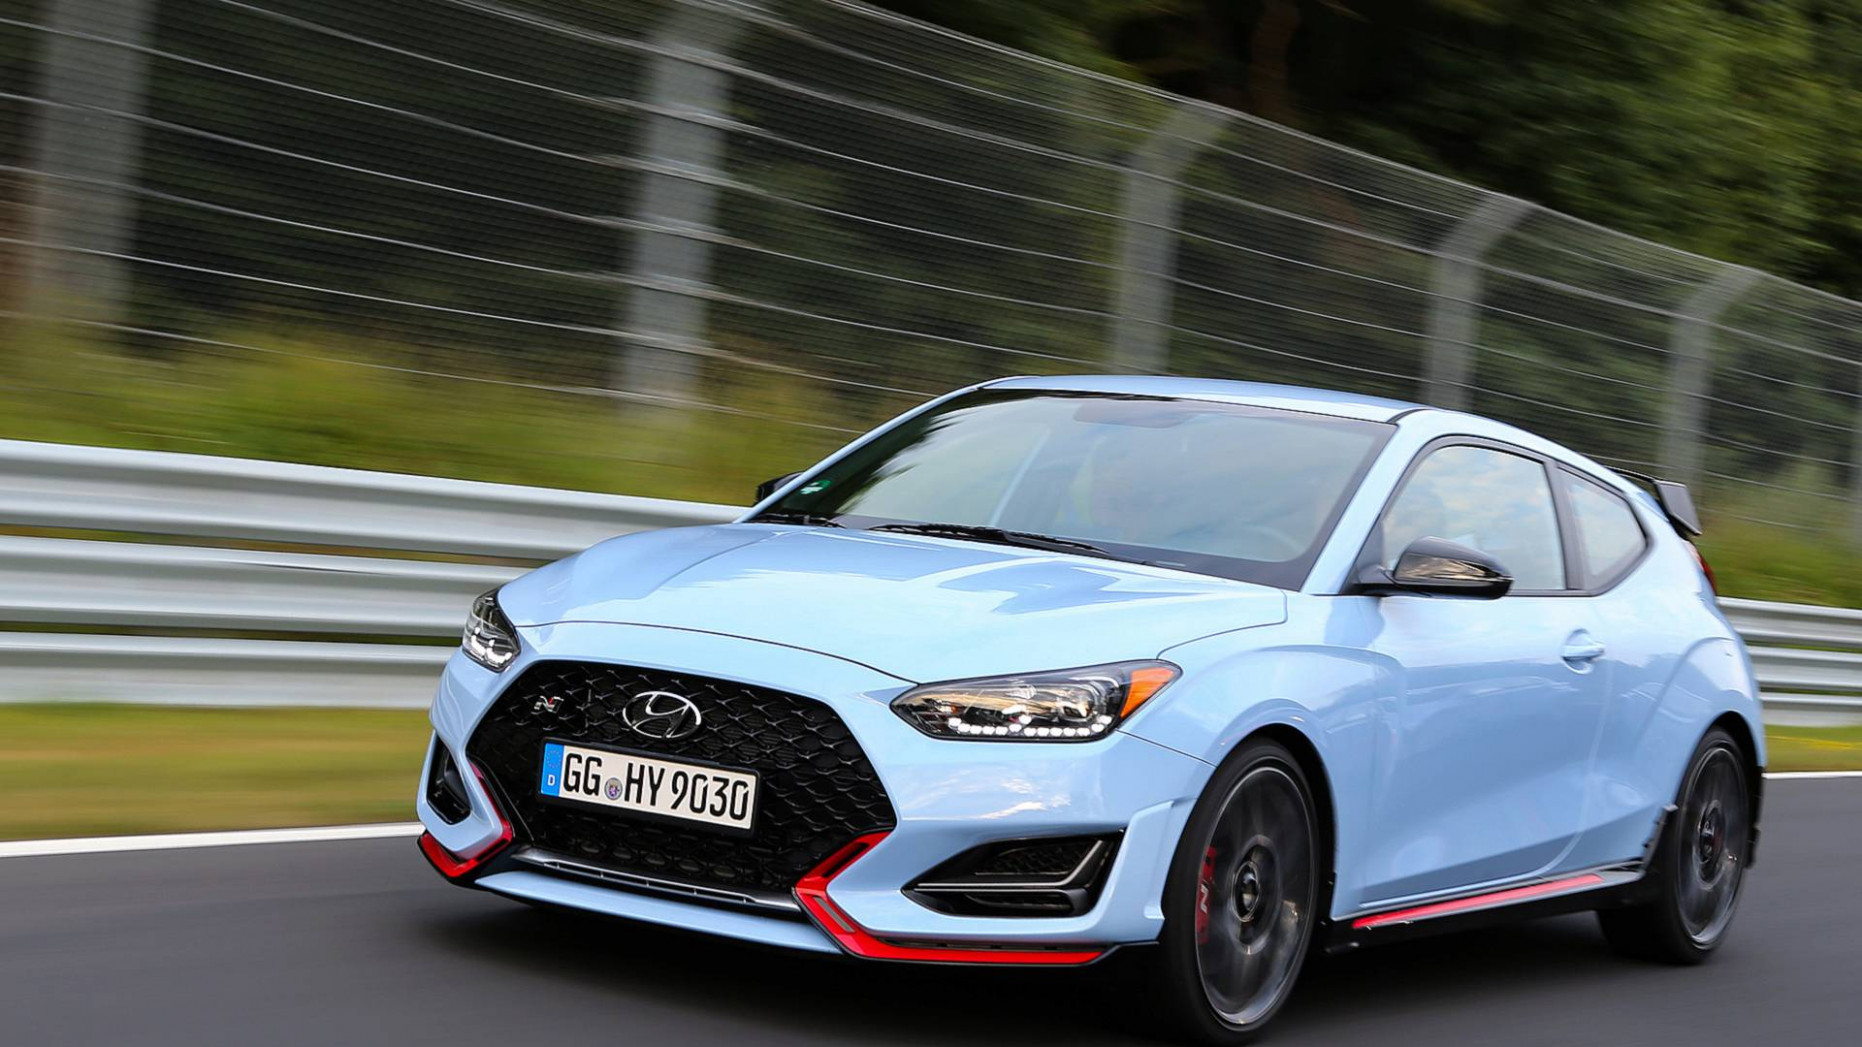 8 Hyundai Veloster N Sees Modest Price Bump